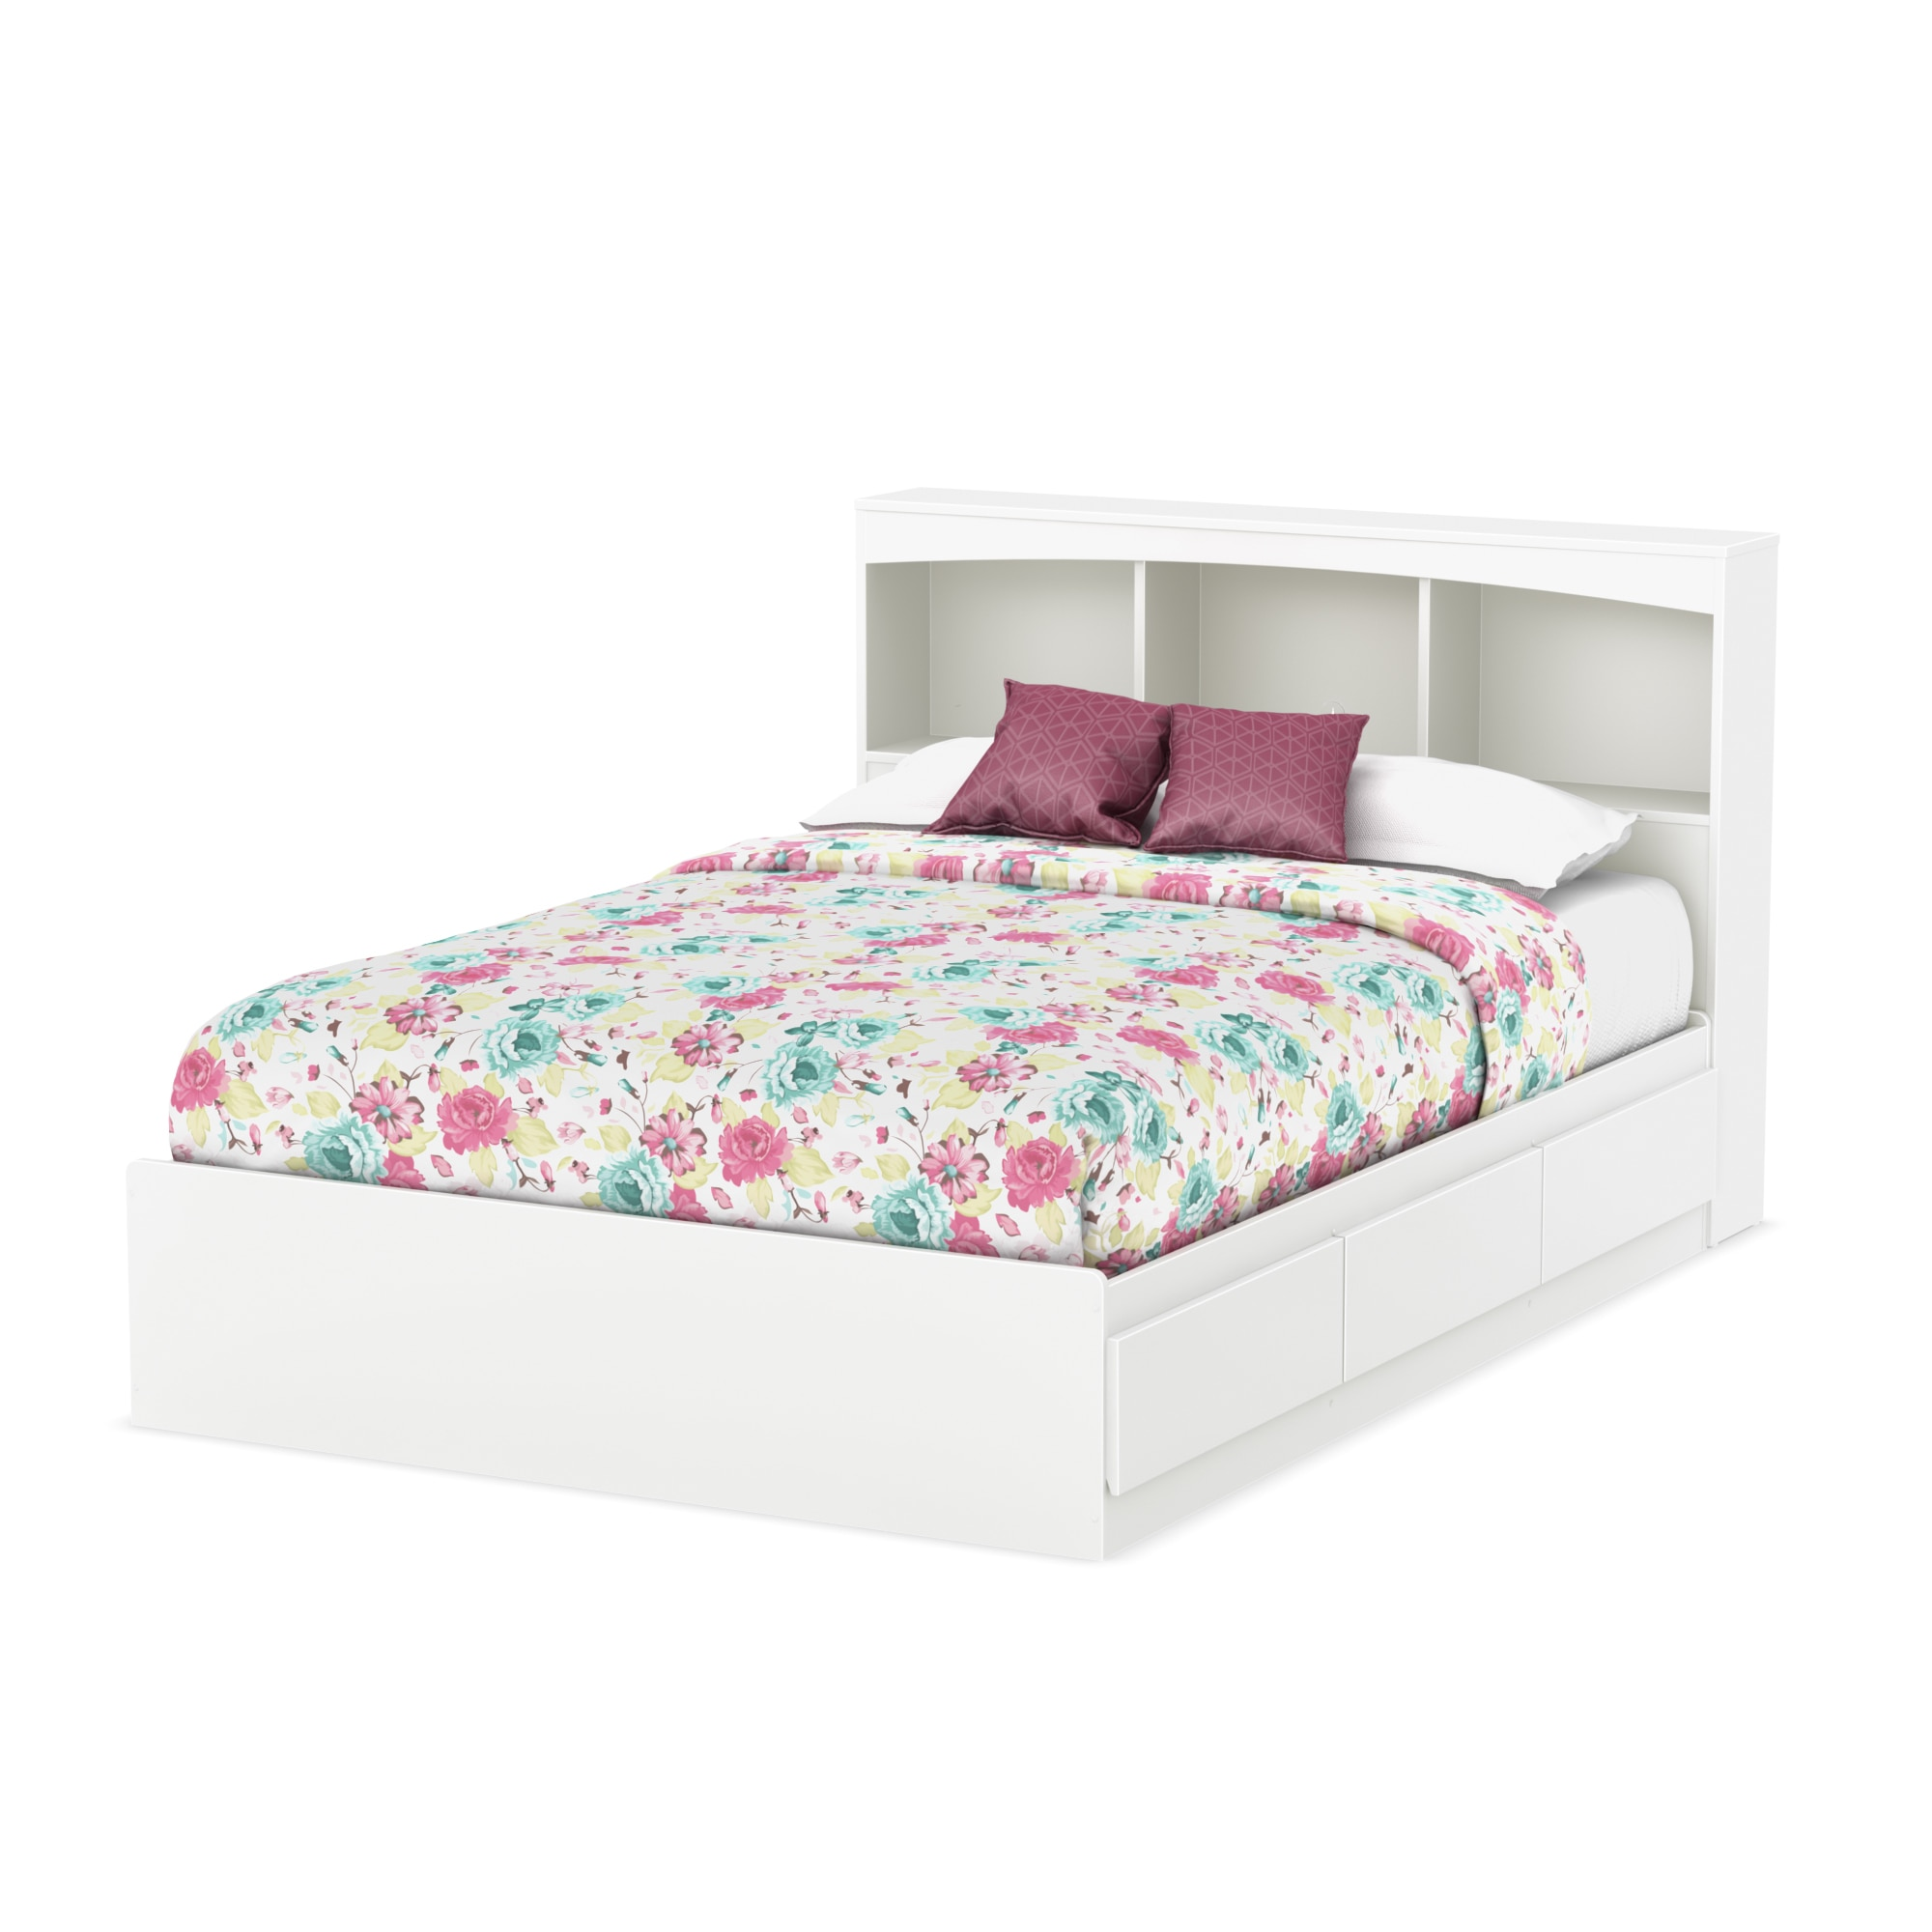 kids headboards shore white spark full beds pure bookcase south headboard p in size